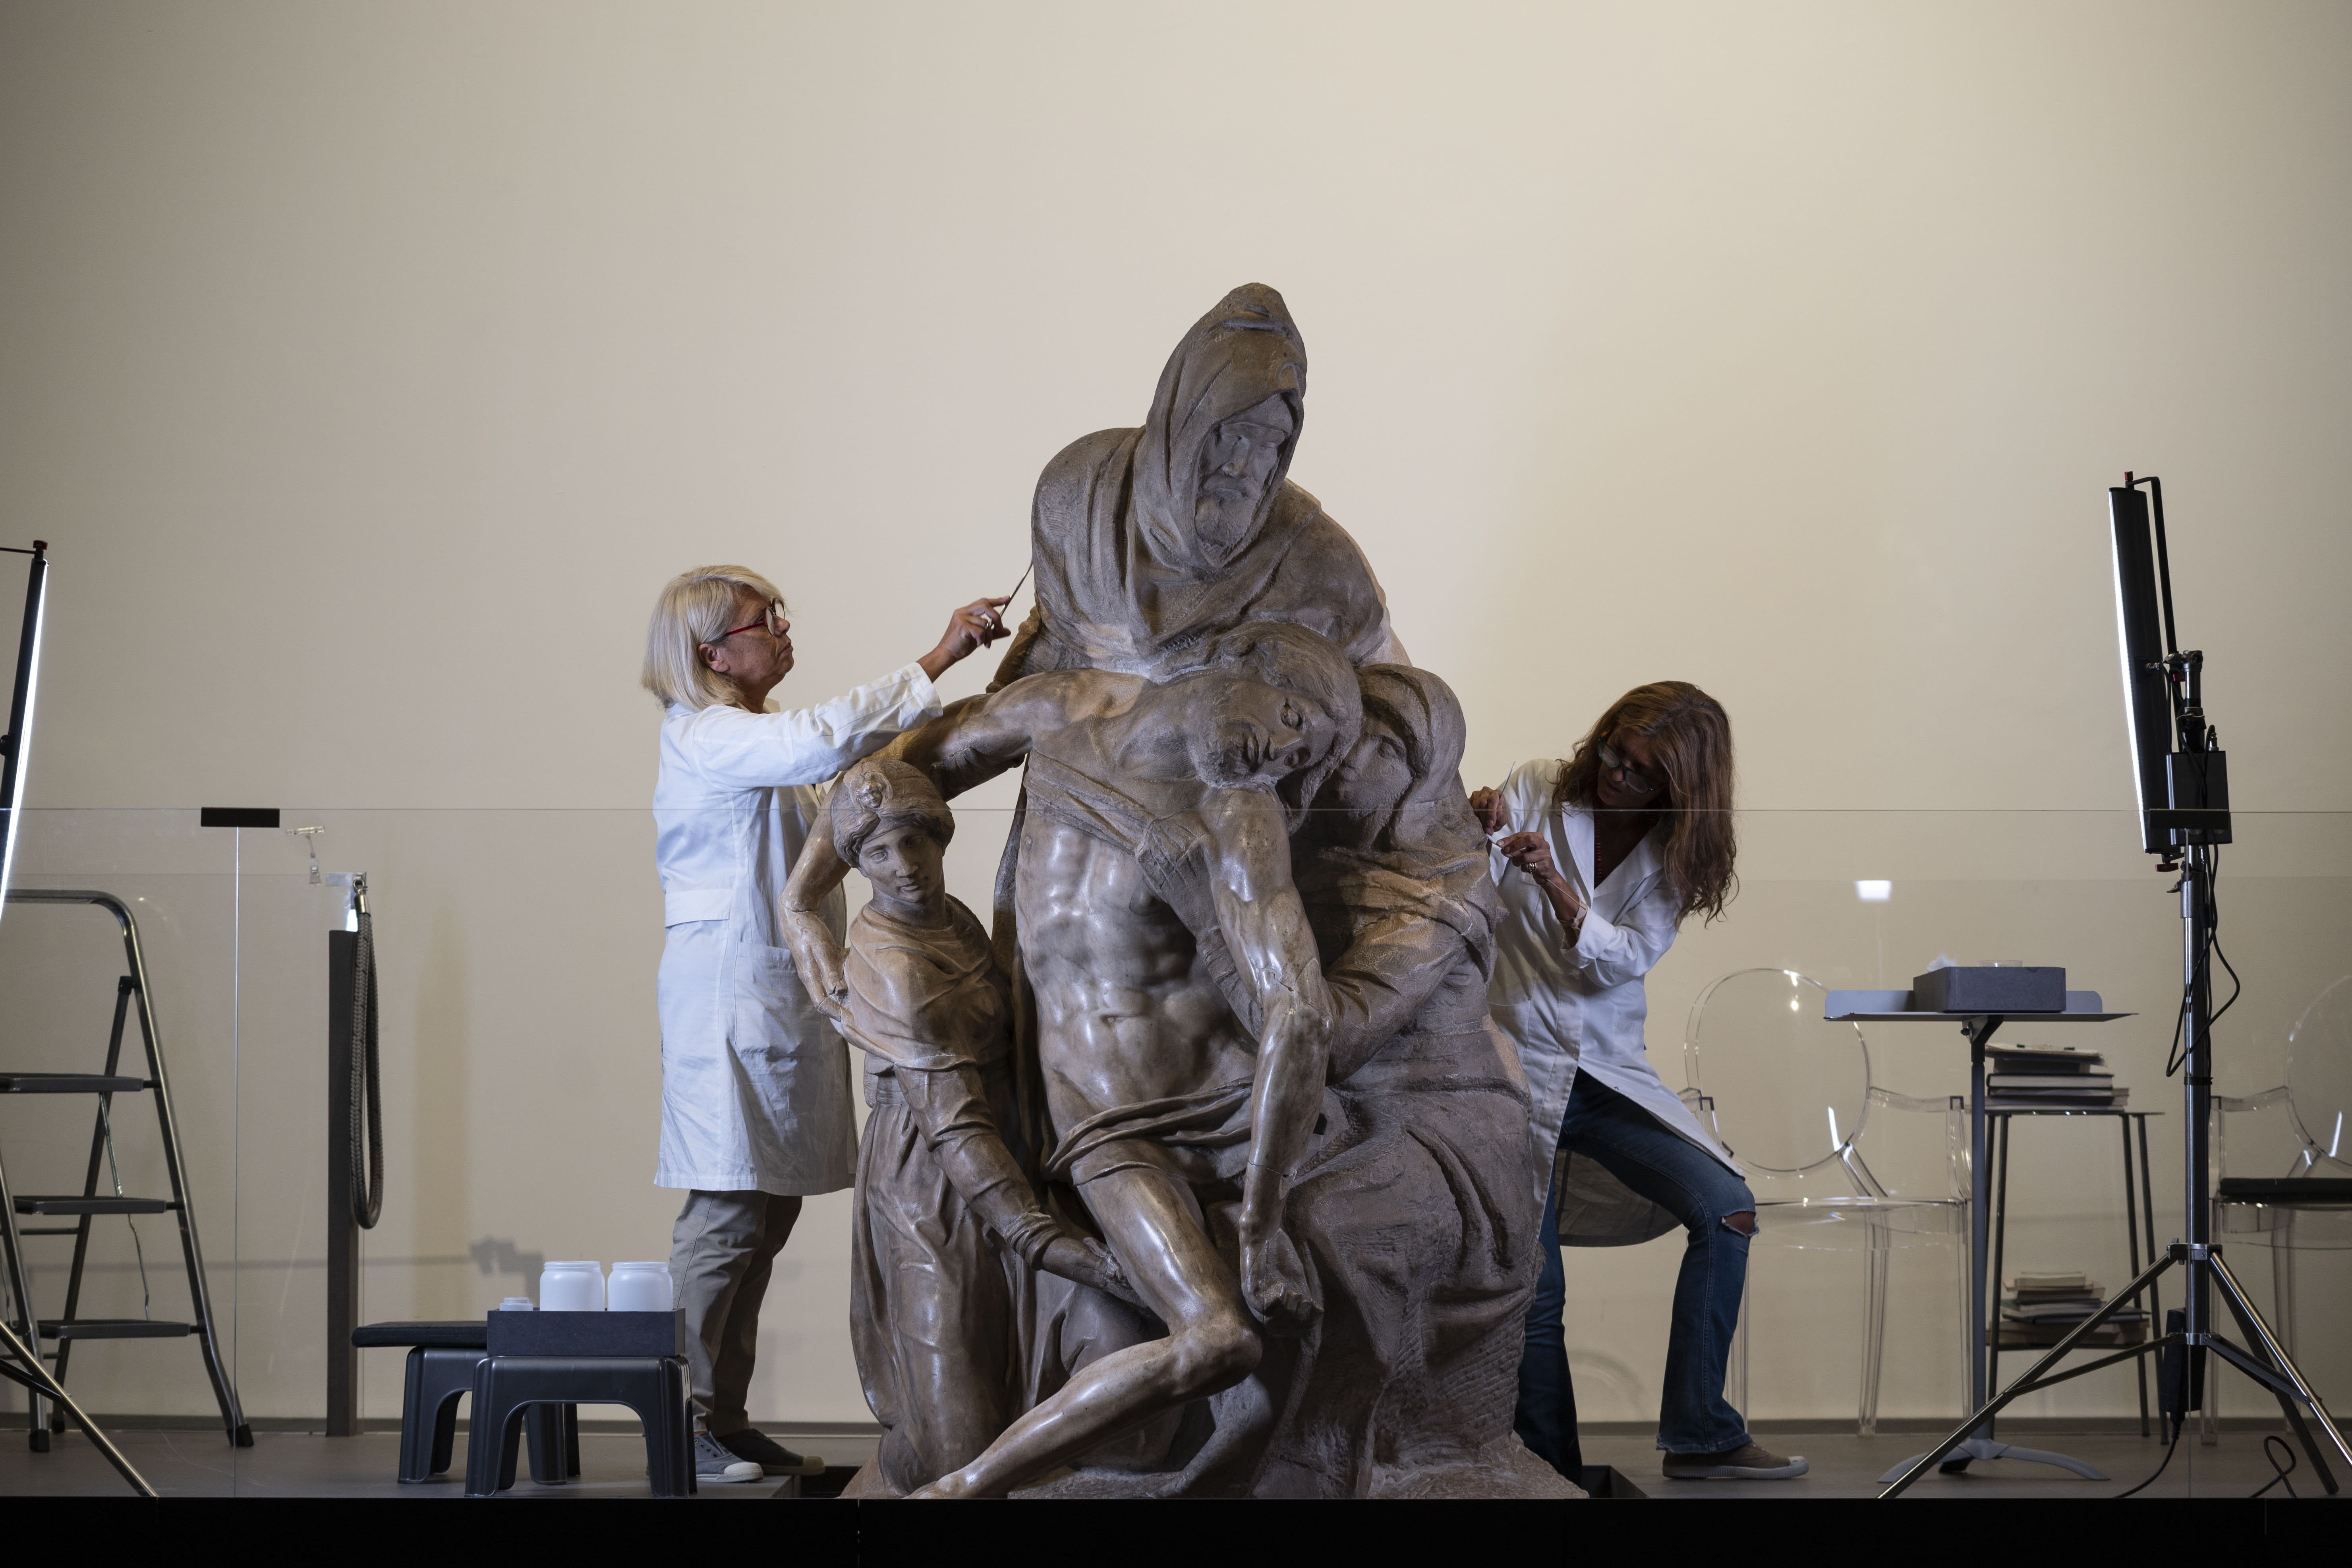 Restorers work on one of Michelangelo's Pieta sculpture in Florence, Italy, Tuesday, Sept. 8, 2020. A restoration of one of Michelangelo's Pieta sculptures has uncovered previously unknown details, including the artist's tool marks, that had been hidden under centuries of dust and wax. Florence's Museo dell'Opera del Duomo said Wednesday, Sept. 16, 2020 that the cleaning of the Bandini Pieta, which began last year but was suspended because of the coronavirus pandemic, had resumed and that the public was now invited to watch restorers at work. Michelangelo carved the Bandini Pieta between 1547-1555, when he was nearly 80. (Claudio Giovannini/Opera di Santa Maria del Fiore via AP)